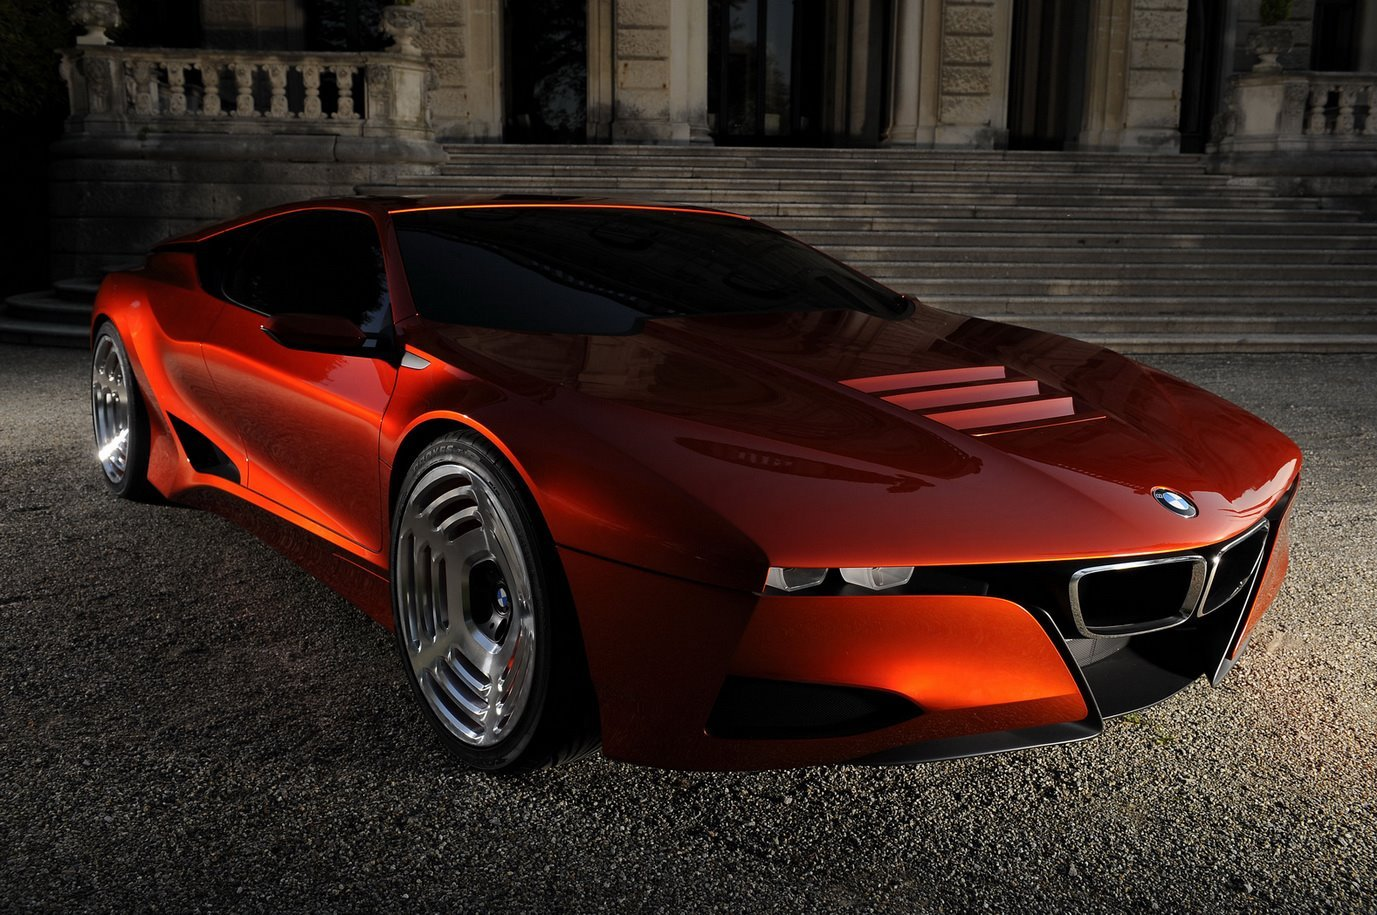 a212 car bmw m1 concept car. Black Bedroom Furniture Sets. Home Design Ideas